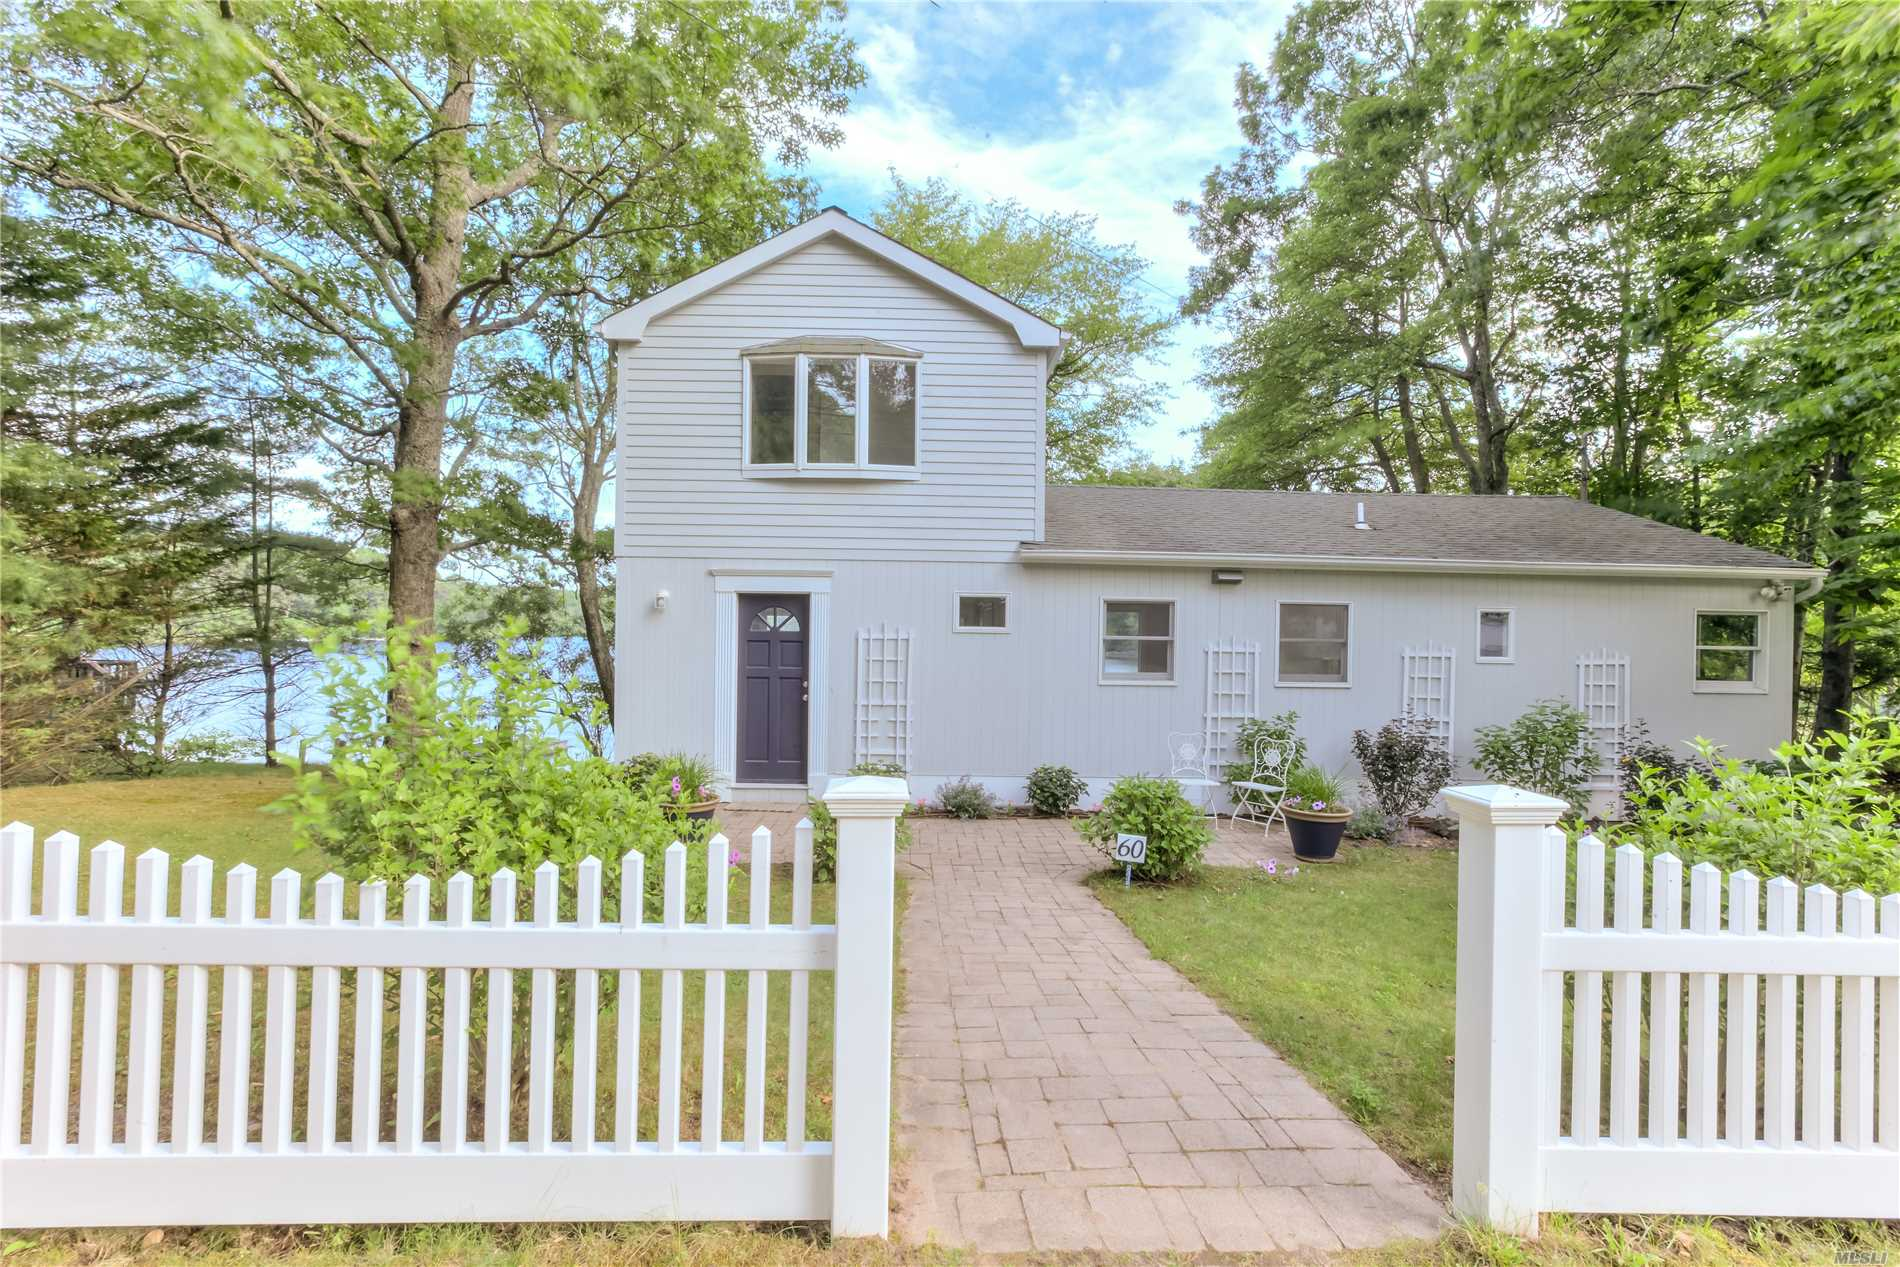 Located In The Desirable Little Fresh Pond Community This Fully Renovated Beach House Is Ready For Your Hampton's Experience. Situated On .16 Acre This Newly Renovated Waterfront Offers 3 Bedrooms, 2.5 Baths, New Hardwood Floors, Central Air, Open Floor Plan With The Chef's Kitchen Adjacent To French Sliders Overlooking Little Fresh Pond. Soak In The Sun On The Expansive Deck Perfect For Morning Sunrise Or Romantic Sunsets And Experience The Serenity Of This Beach House Design. Minutes To Ocean!